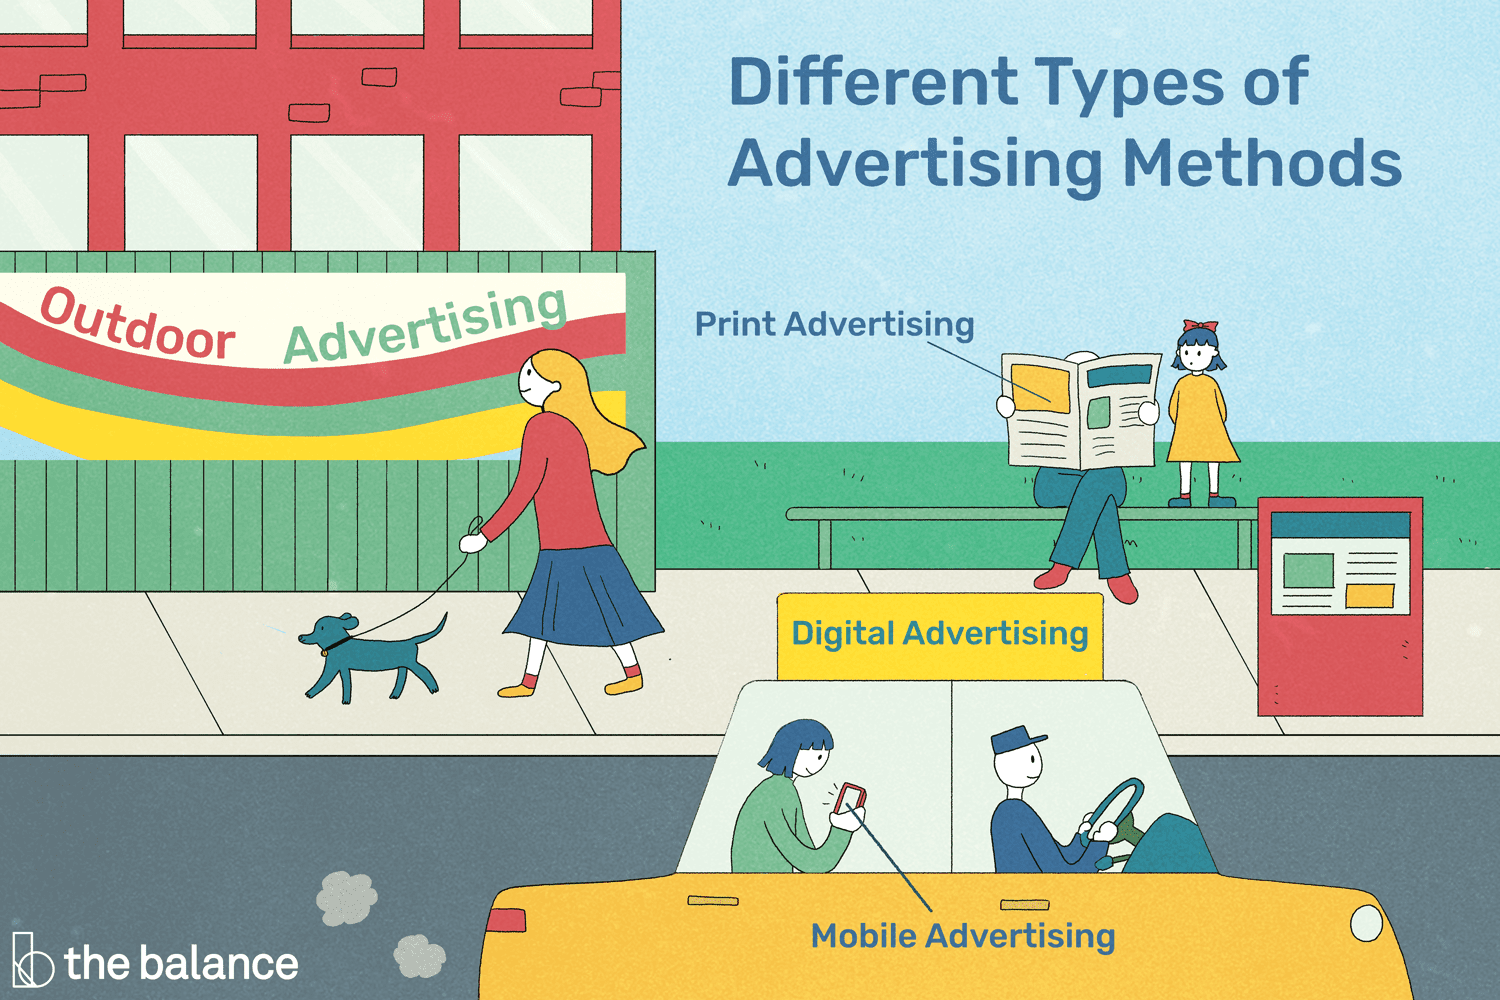 Preposition In Learn In Marathi All Complate: Different Types Of Advertising Methods And Media